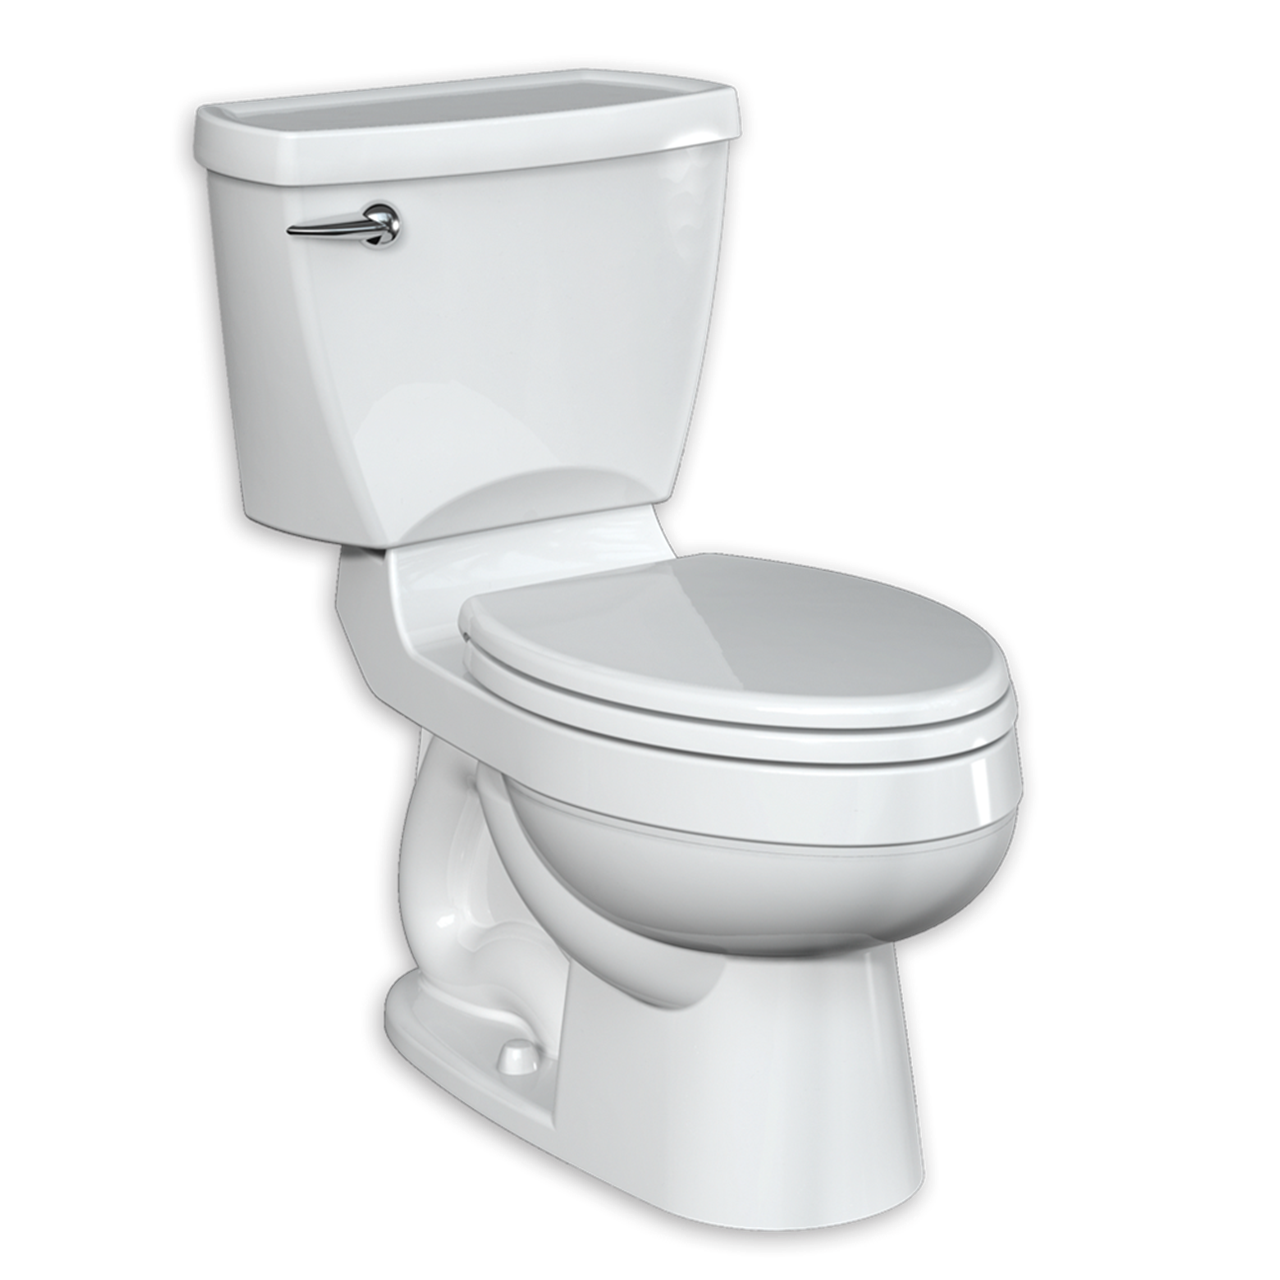 Champion 4 Elongated Complete 1 6 Gpf Toilet Bahroom Remodel Toilet American Standard Bathroom